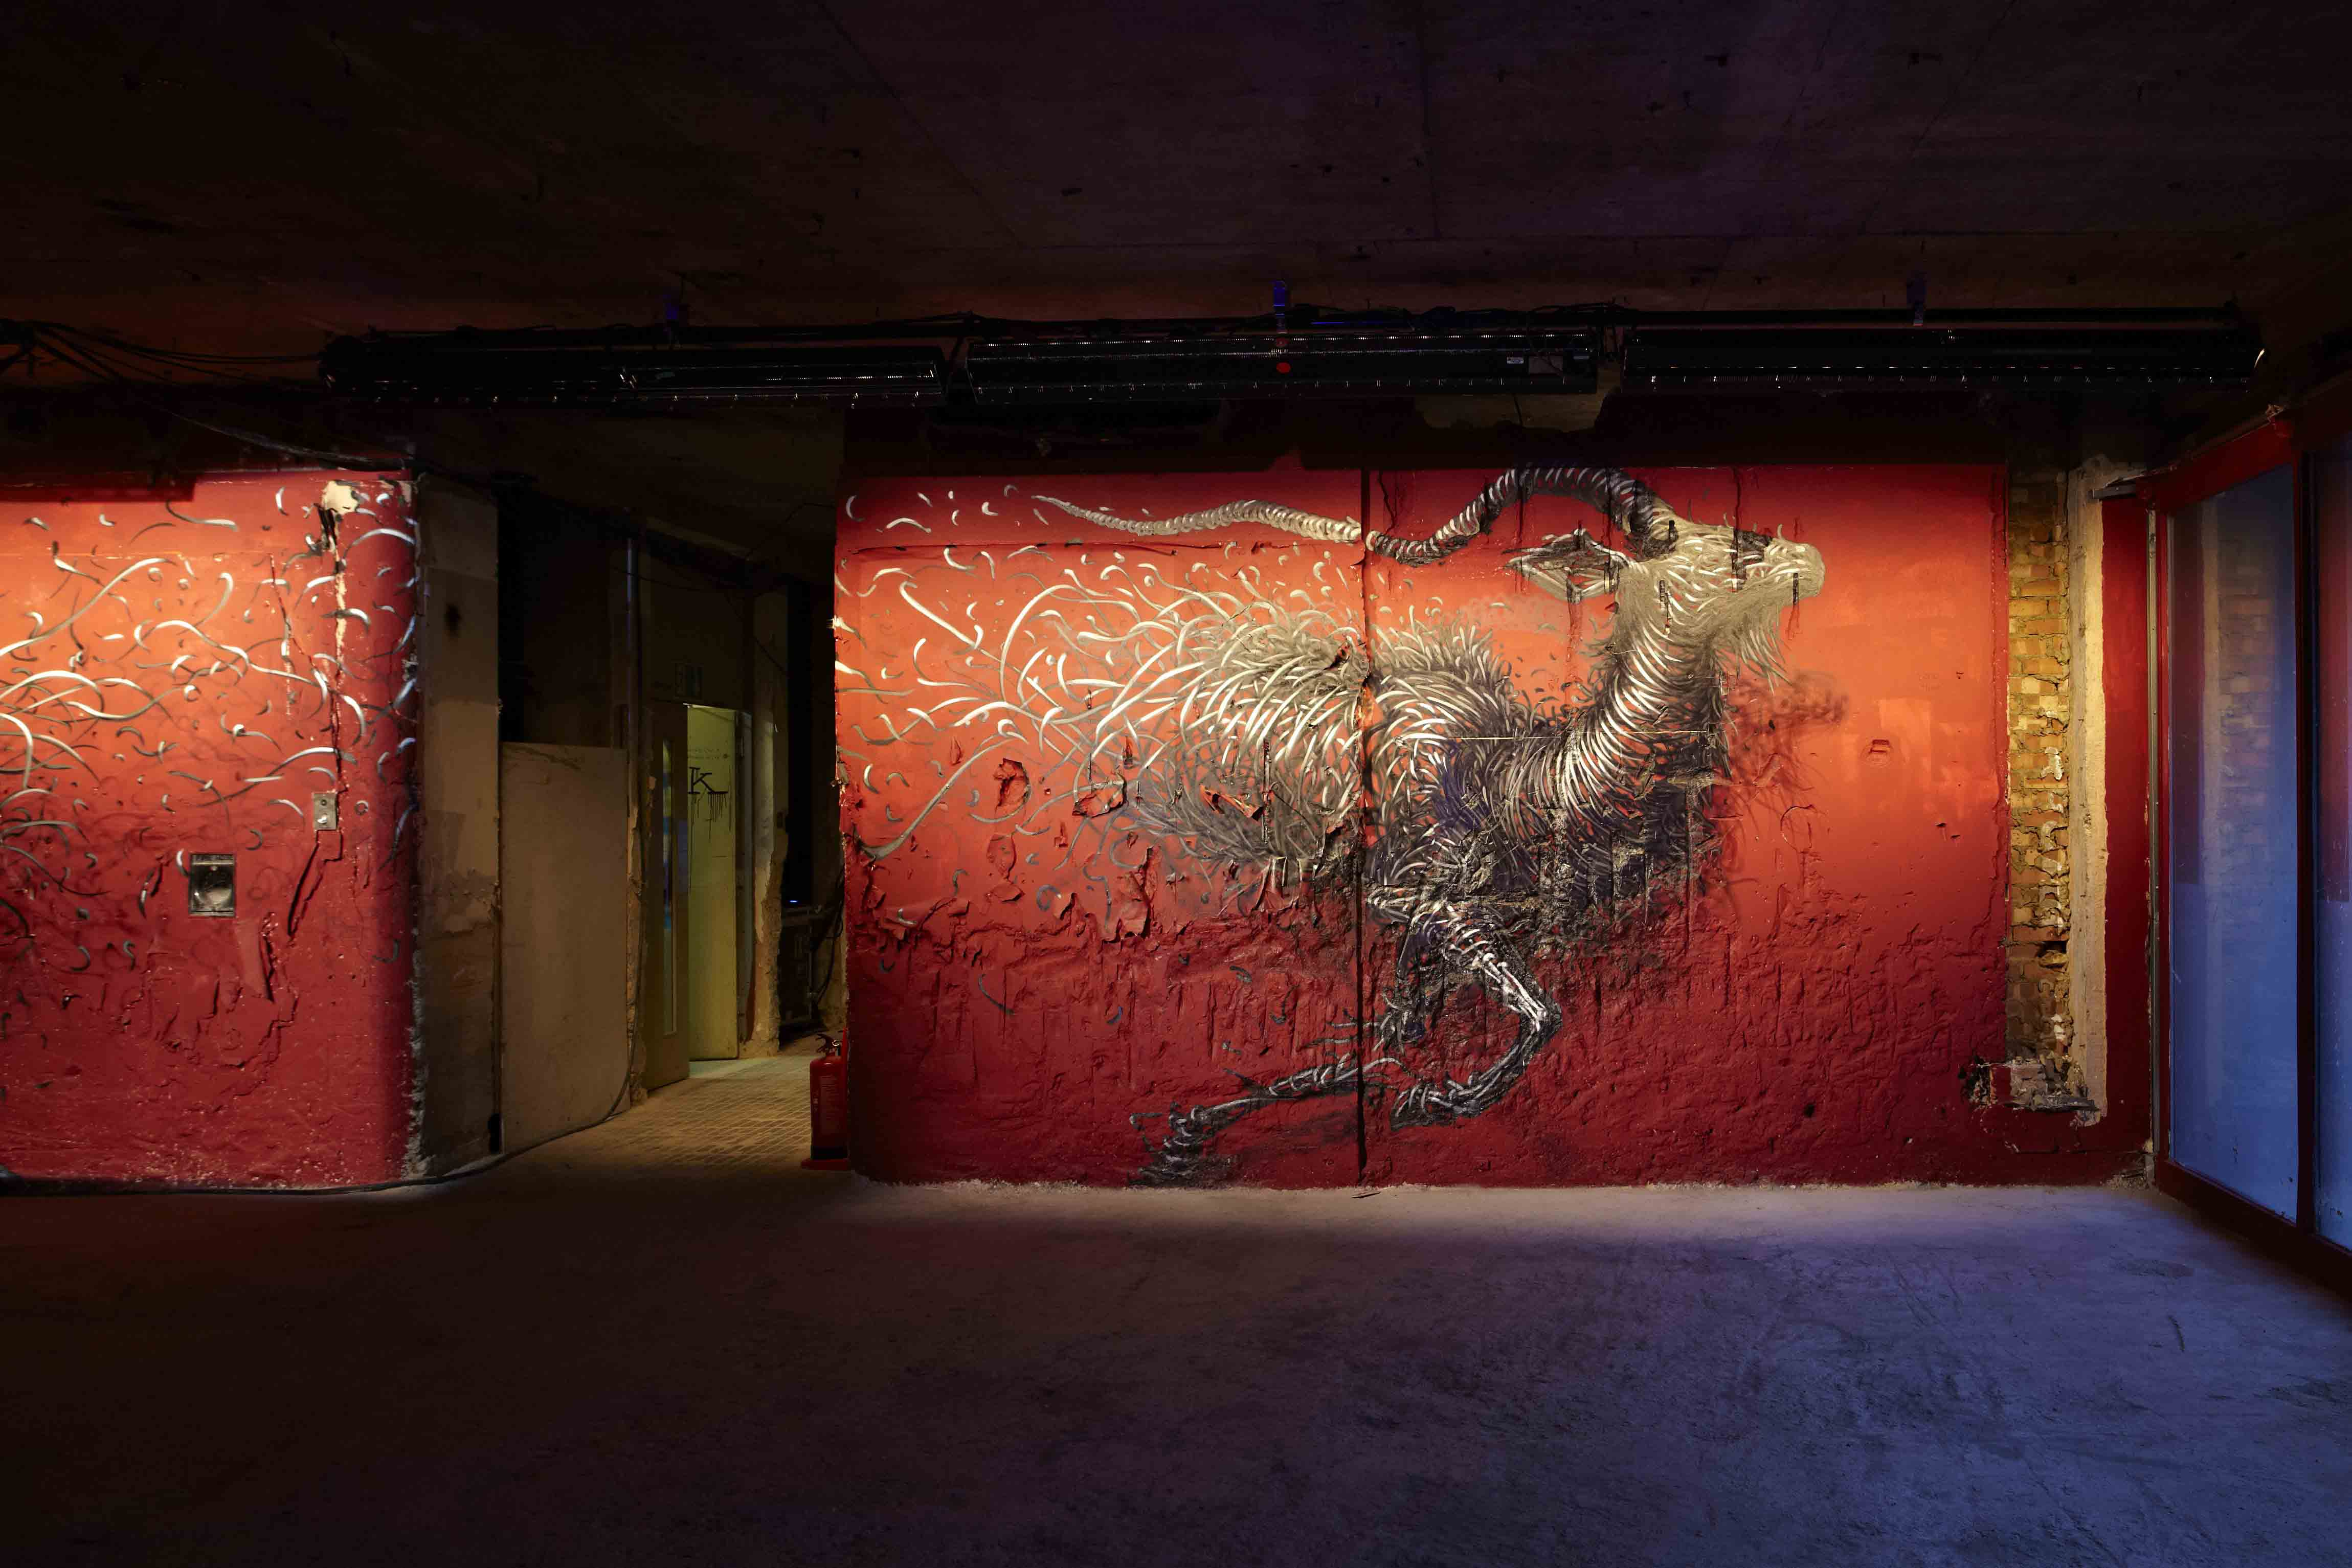 Lazarides New Exhibition: Morphing Brutality into Beauty